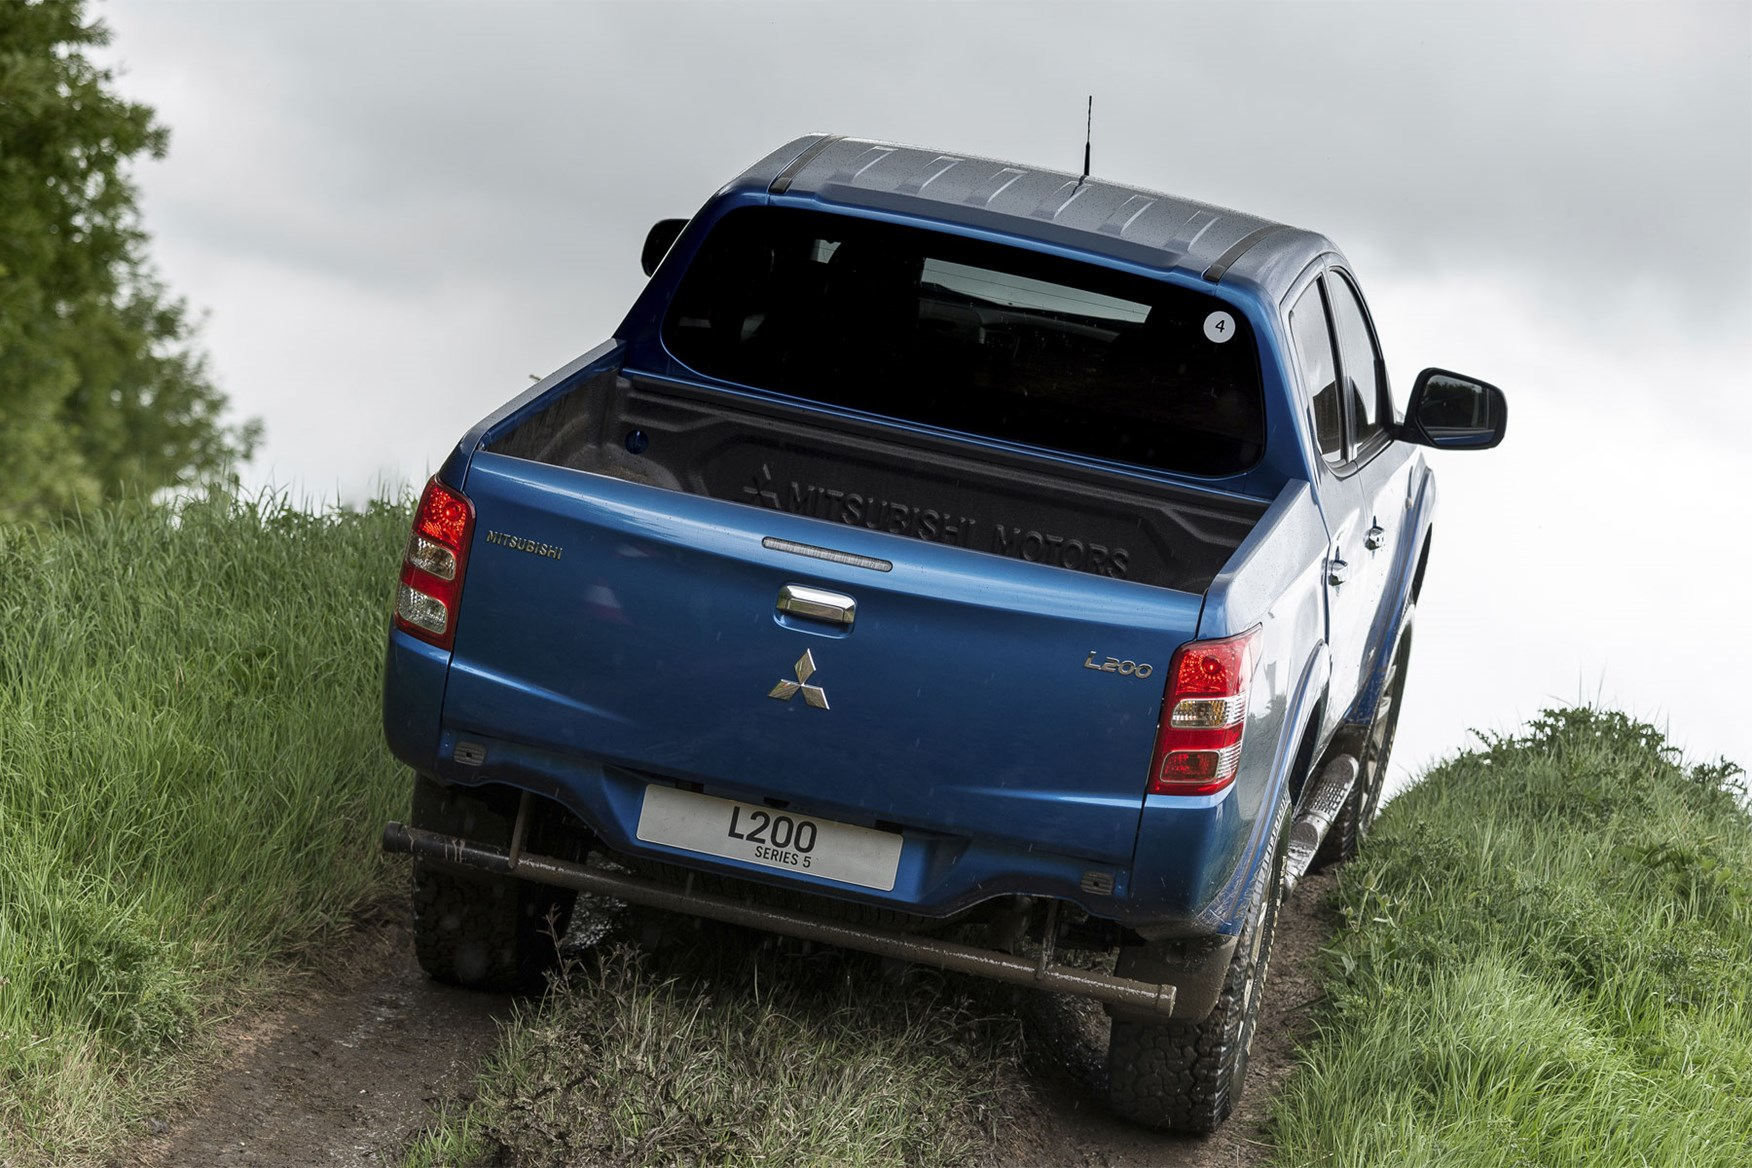 Mitsubishi L200 review, blue, driving off road, rear view